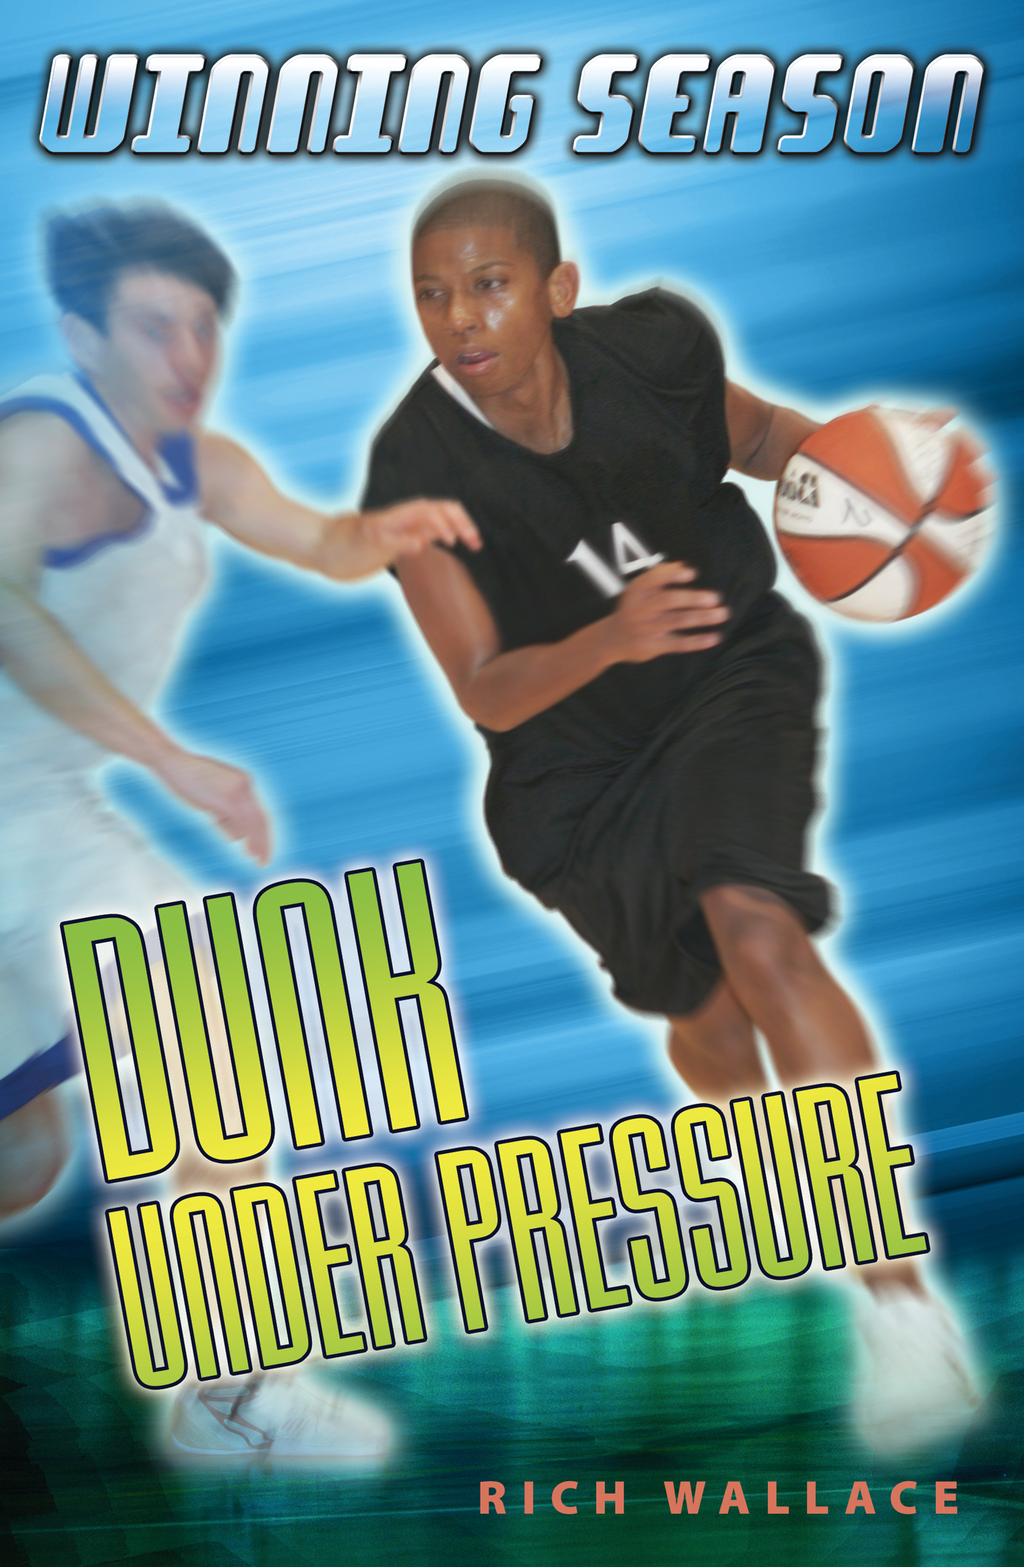 Dunk Under Pressure #7 By: Rich Wallace